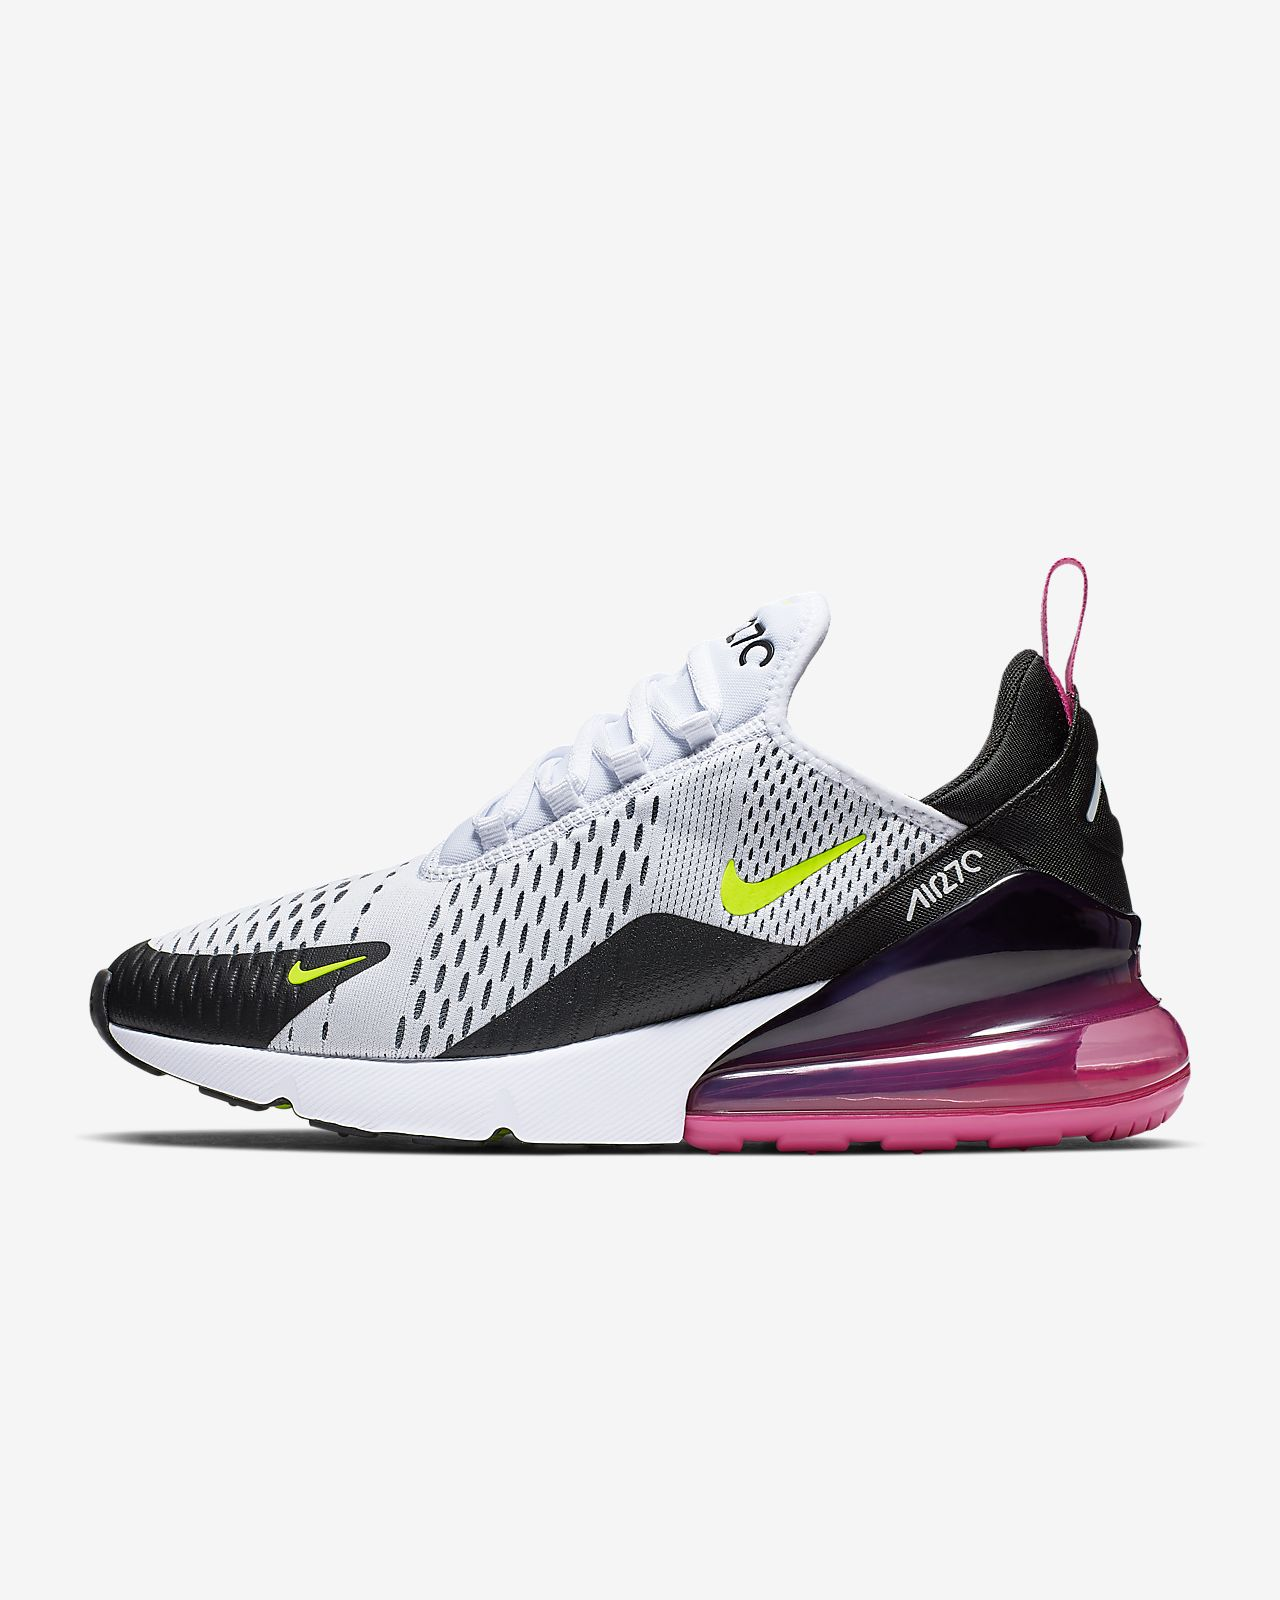 4cfe131e2c Nike Air Max 270 Men's Shoe. Nike.com ID